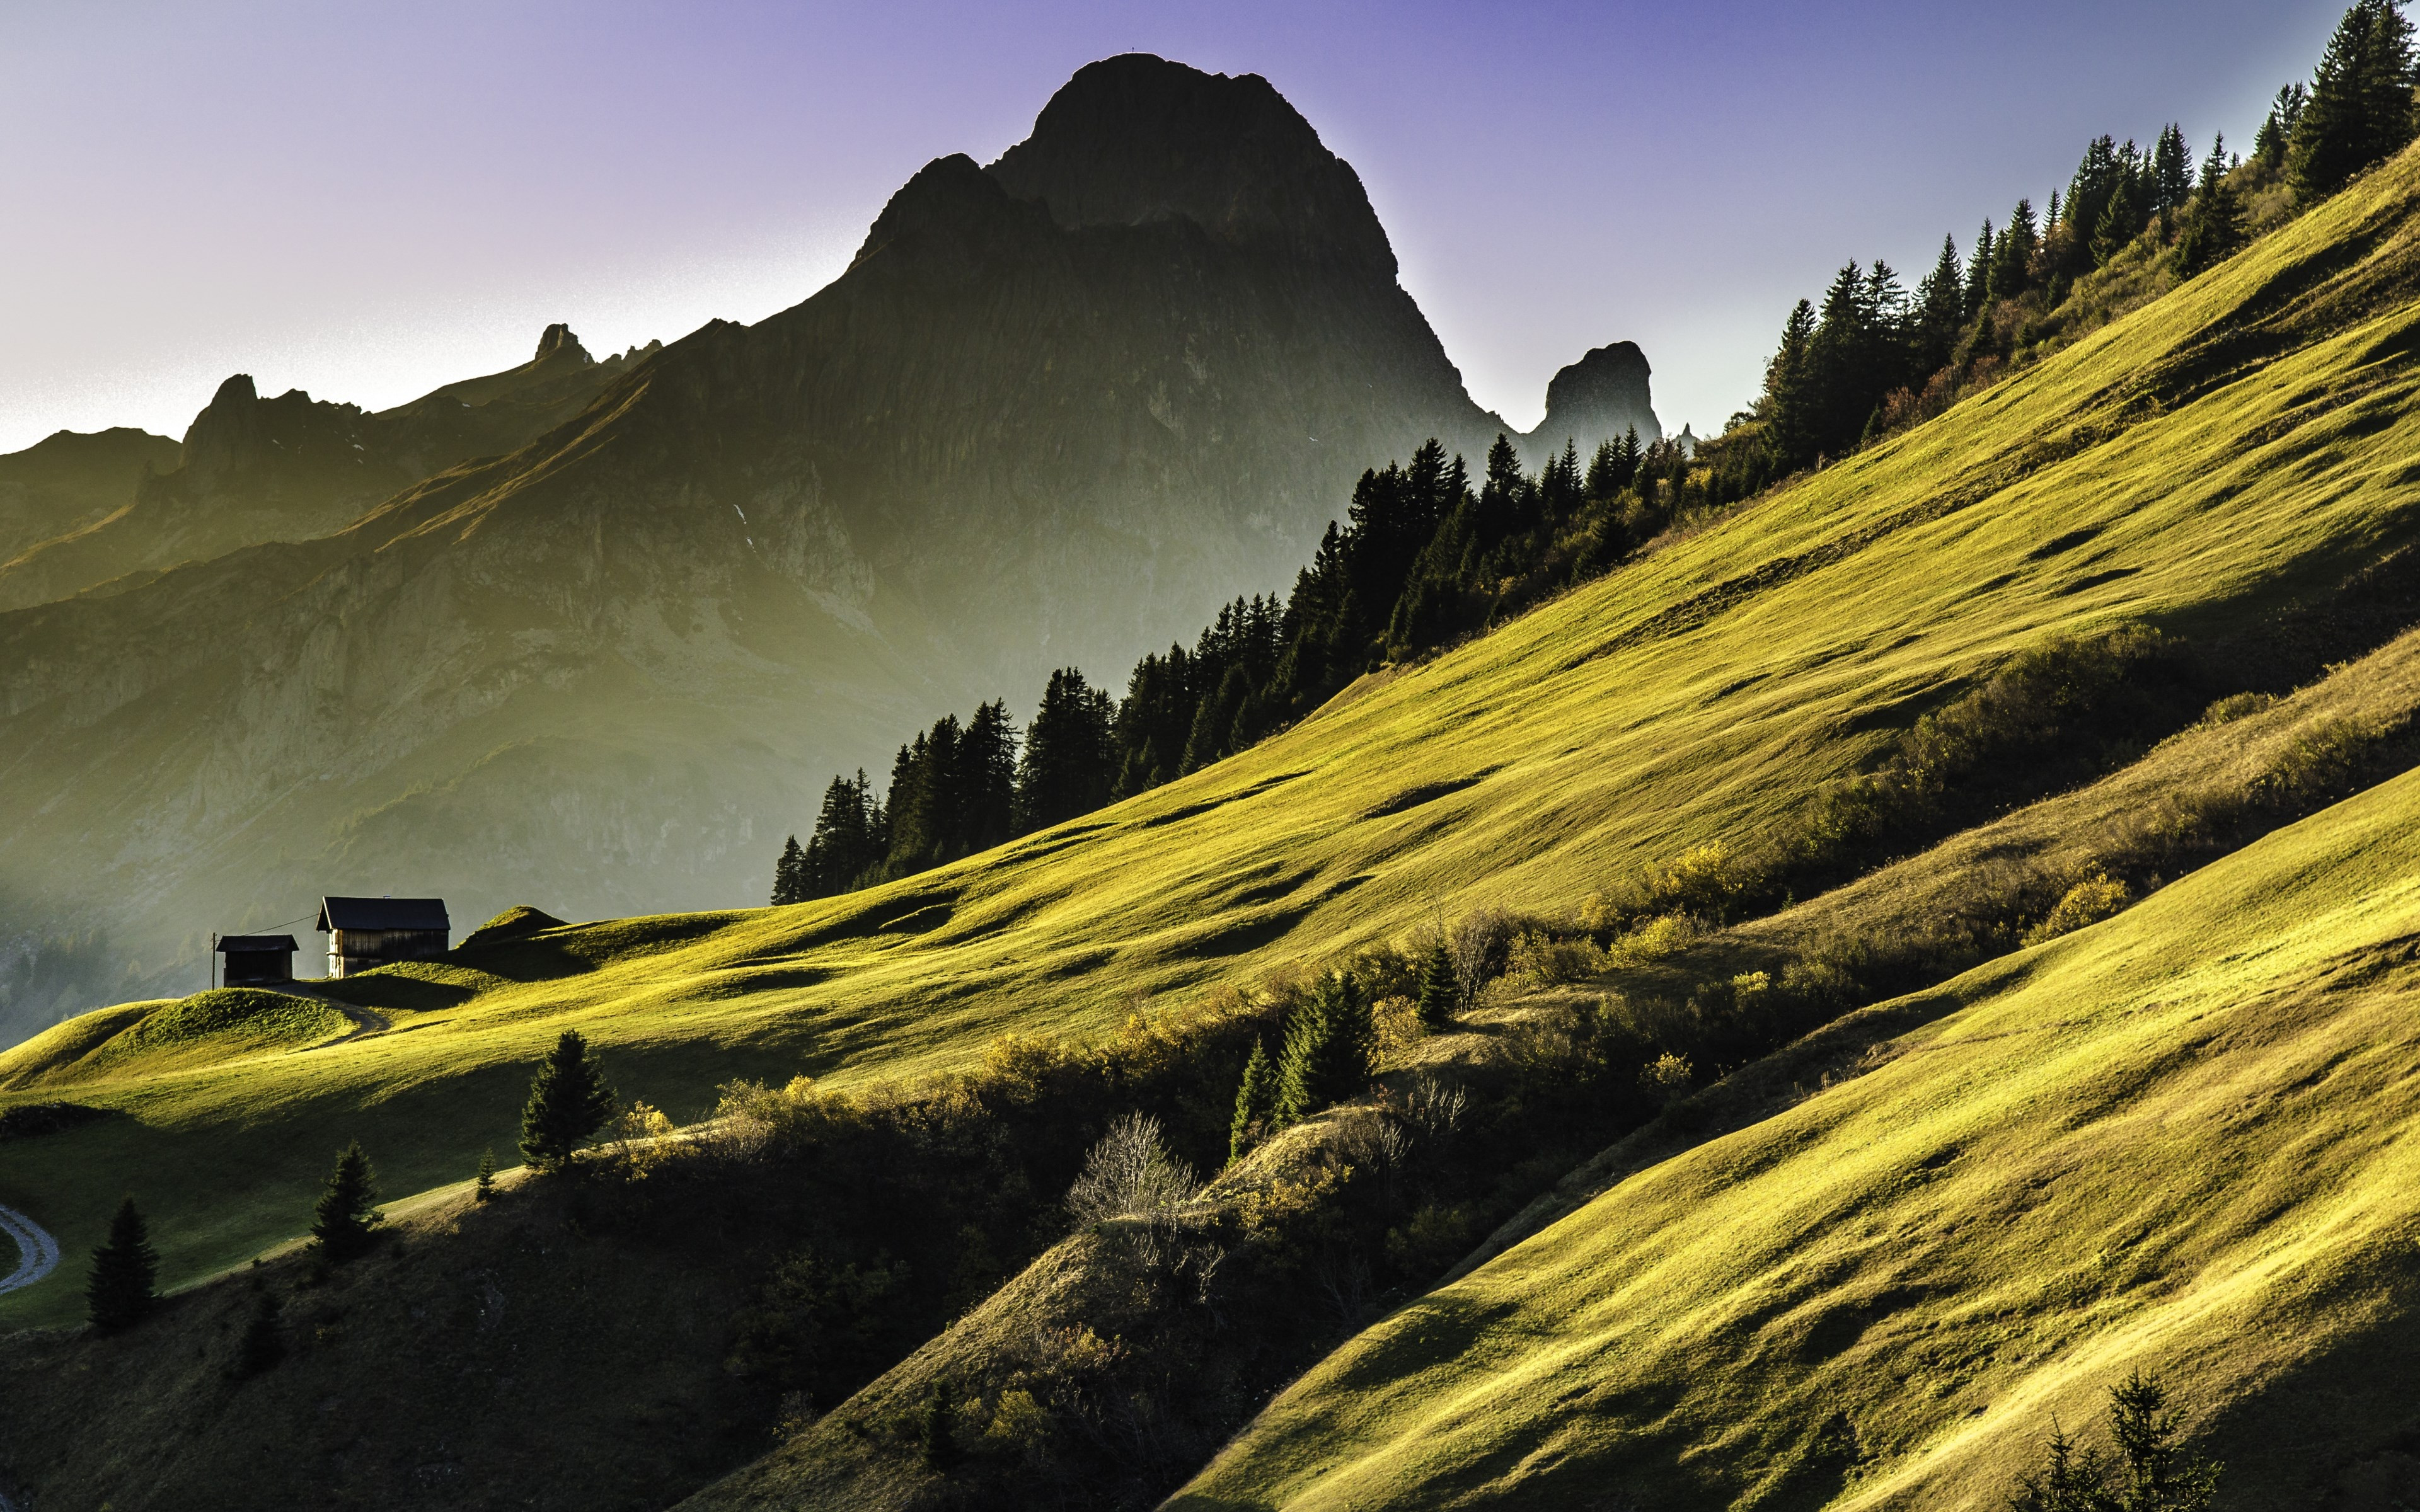 Alpine landscape wallpaper 3840x2400